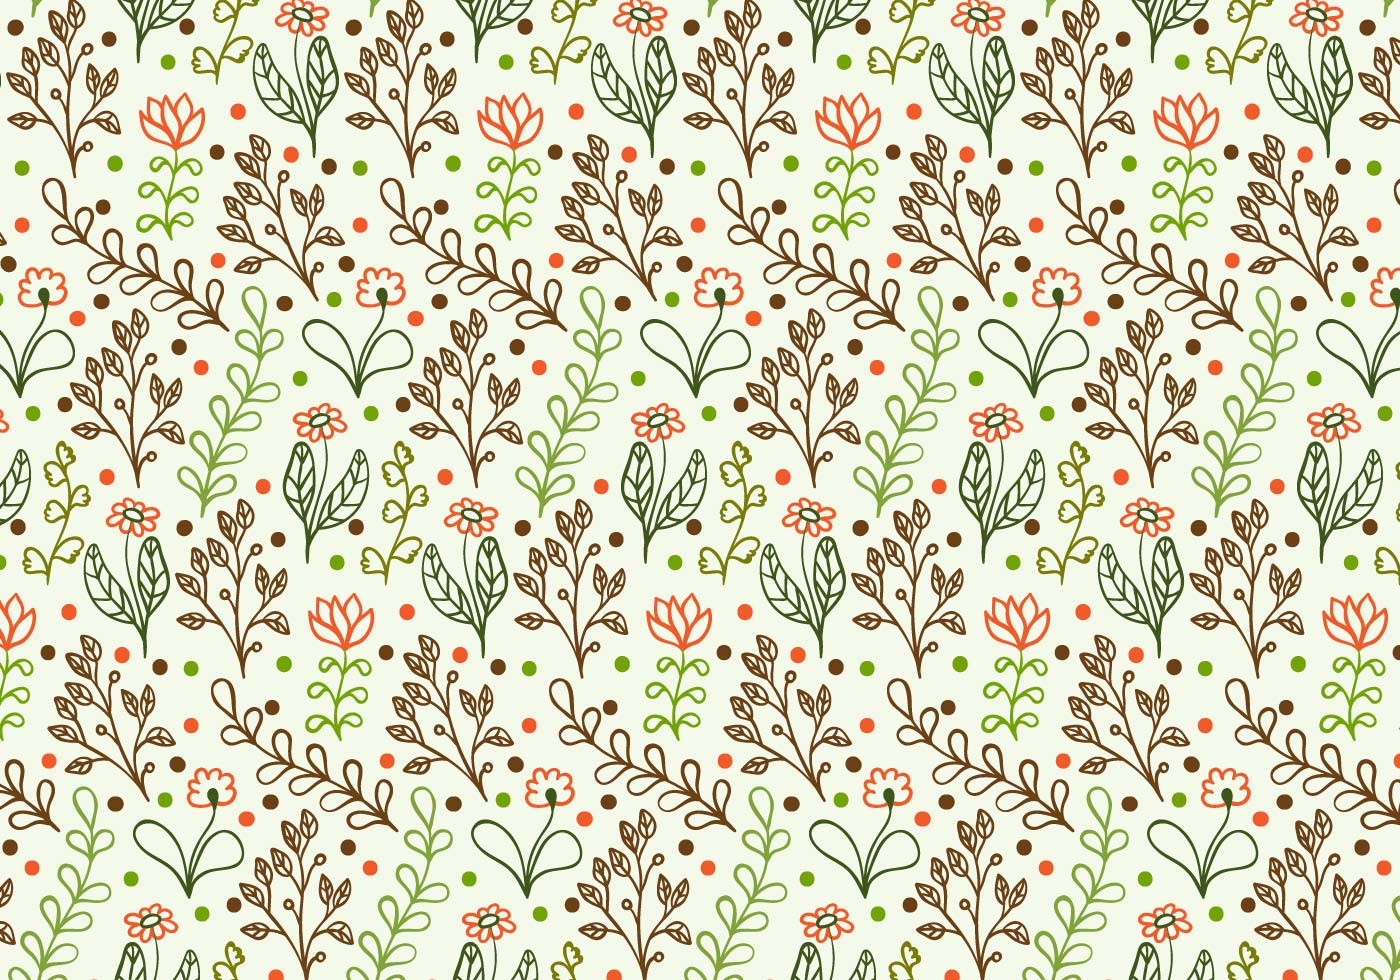 Free Vector Doodle Floral Background - Download Free ...